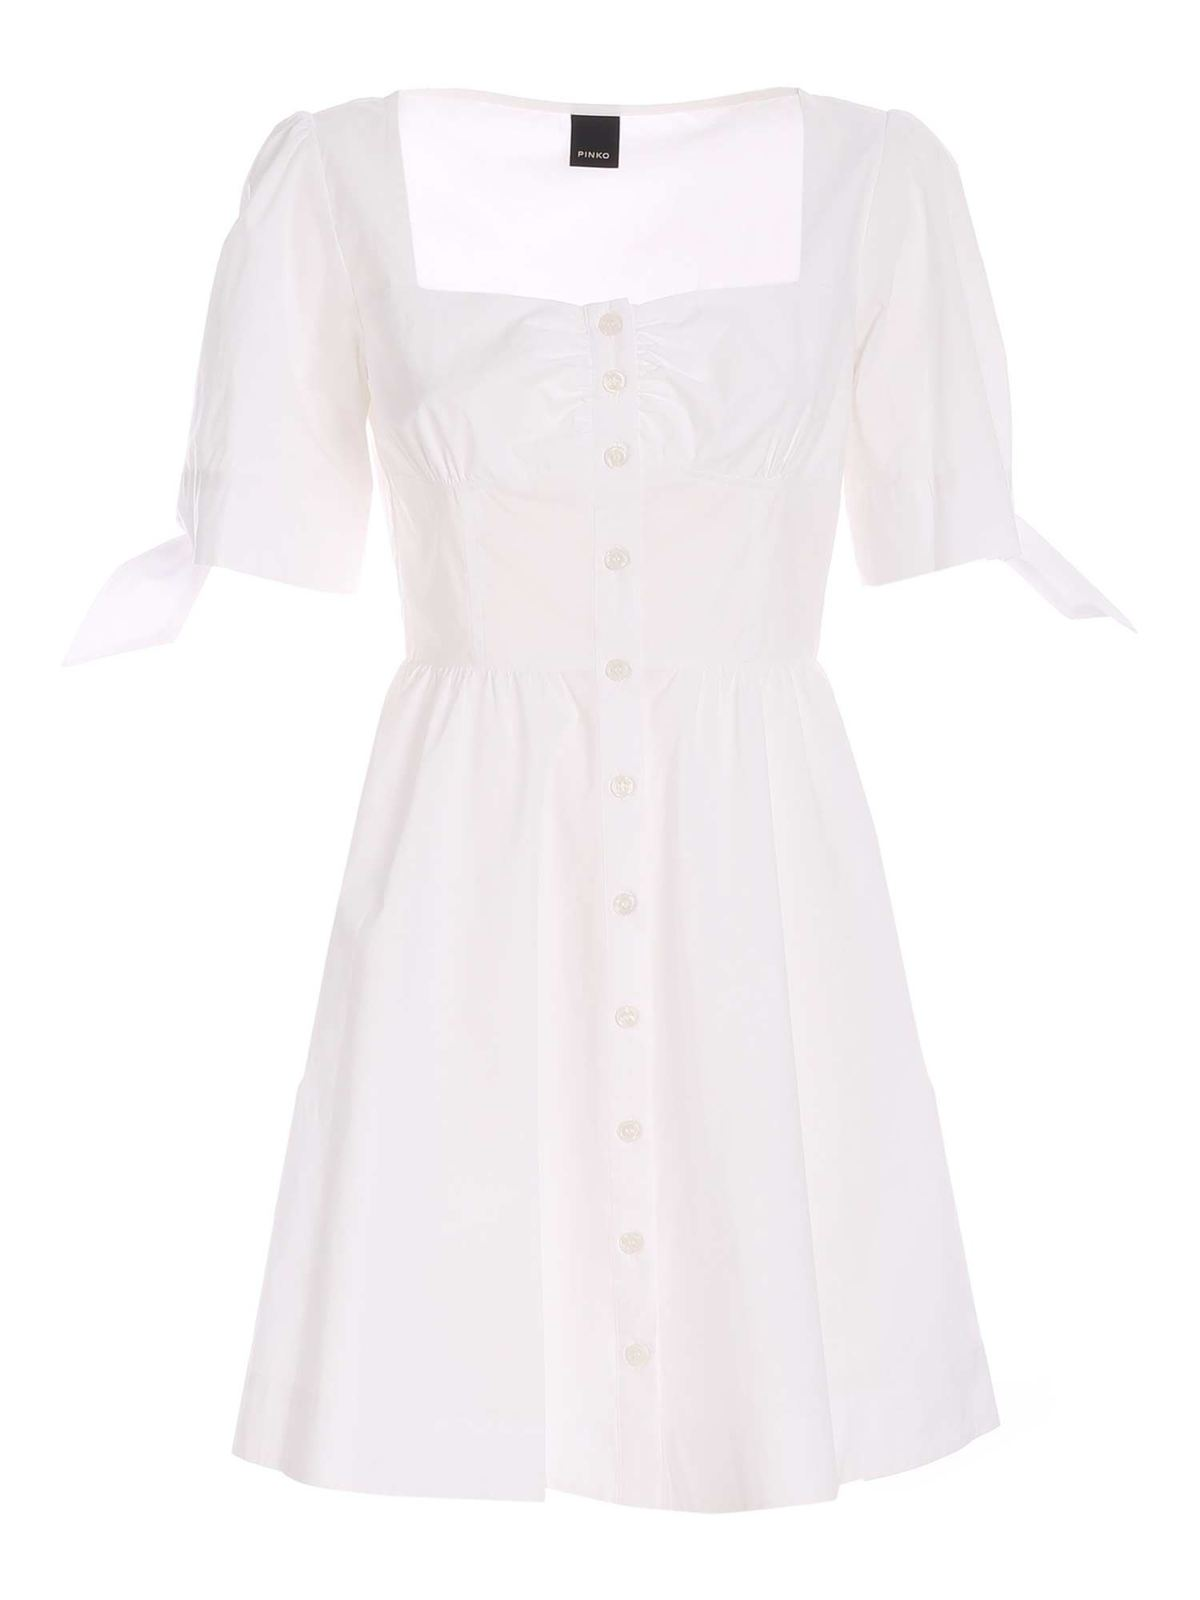 Pinko Cottons ASSOLTO DRESS IN WHITE